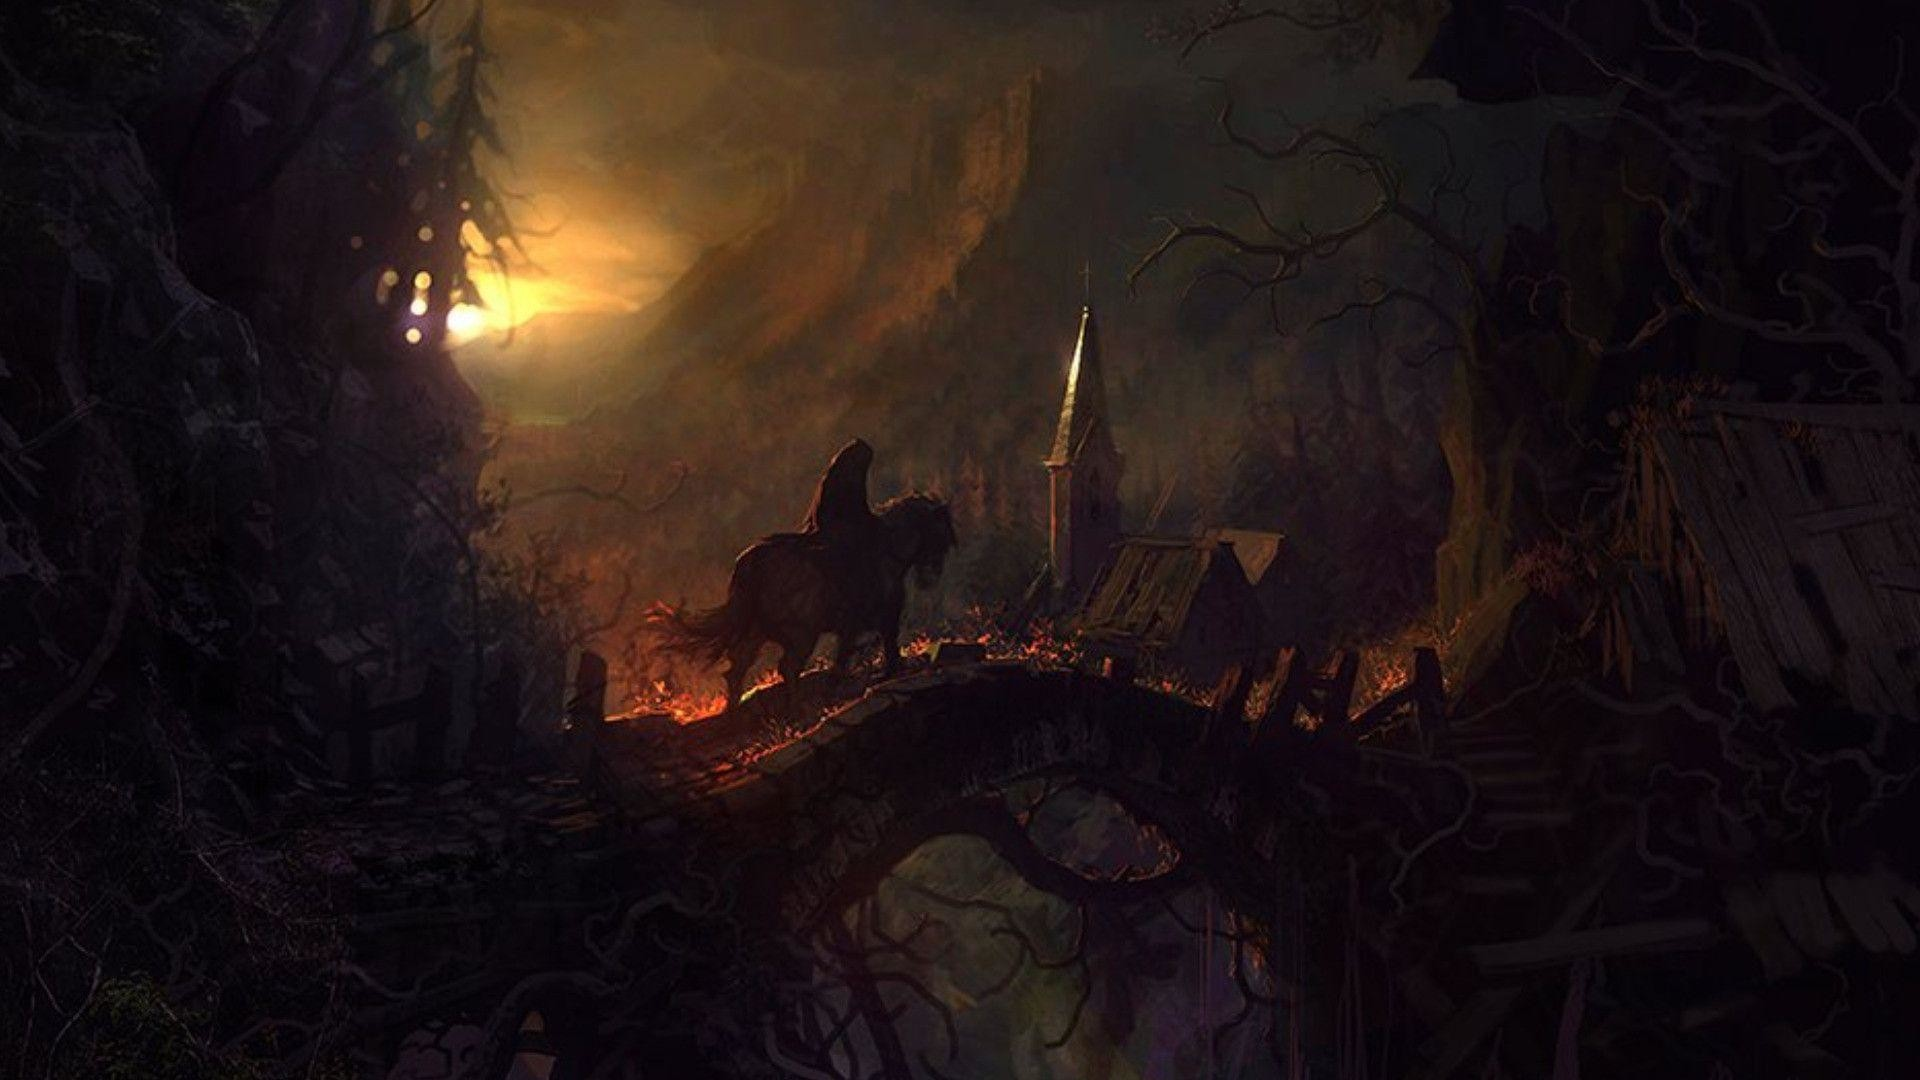 Castlevania Backgrounds 70 Images